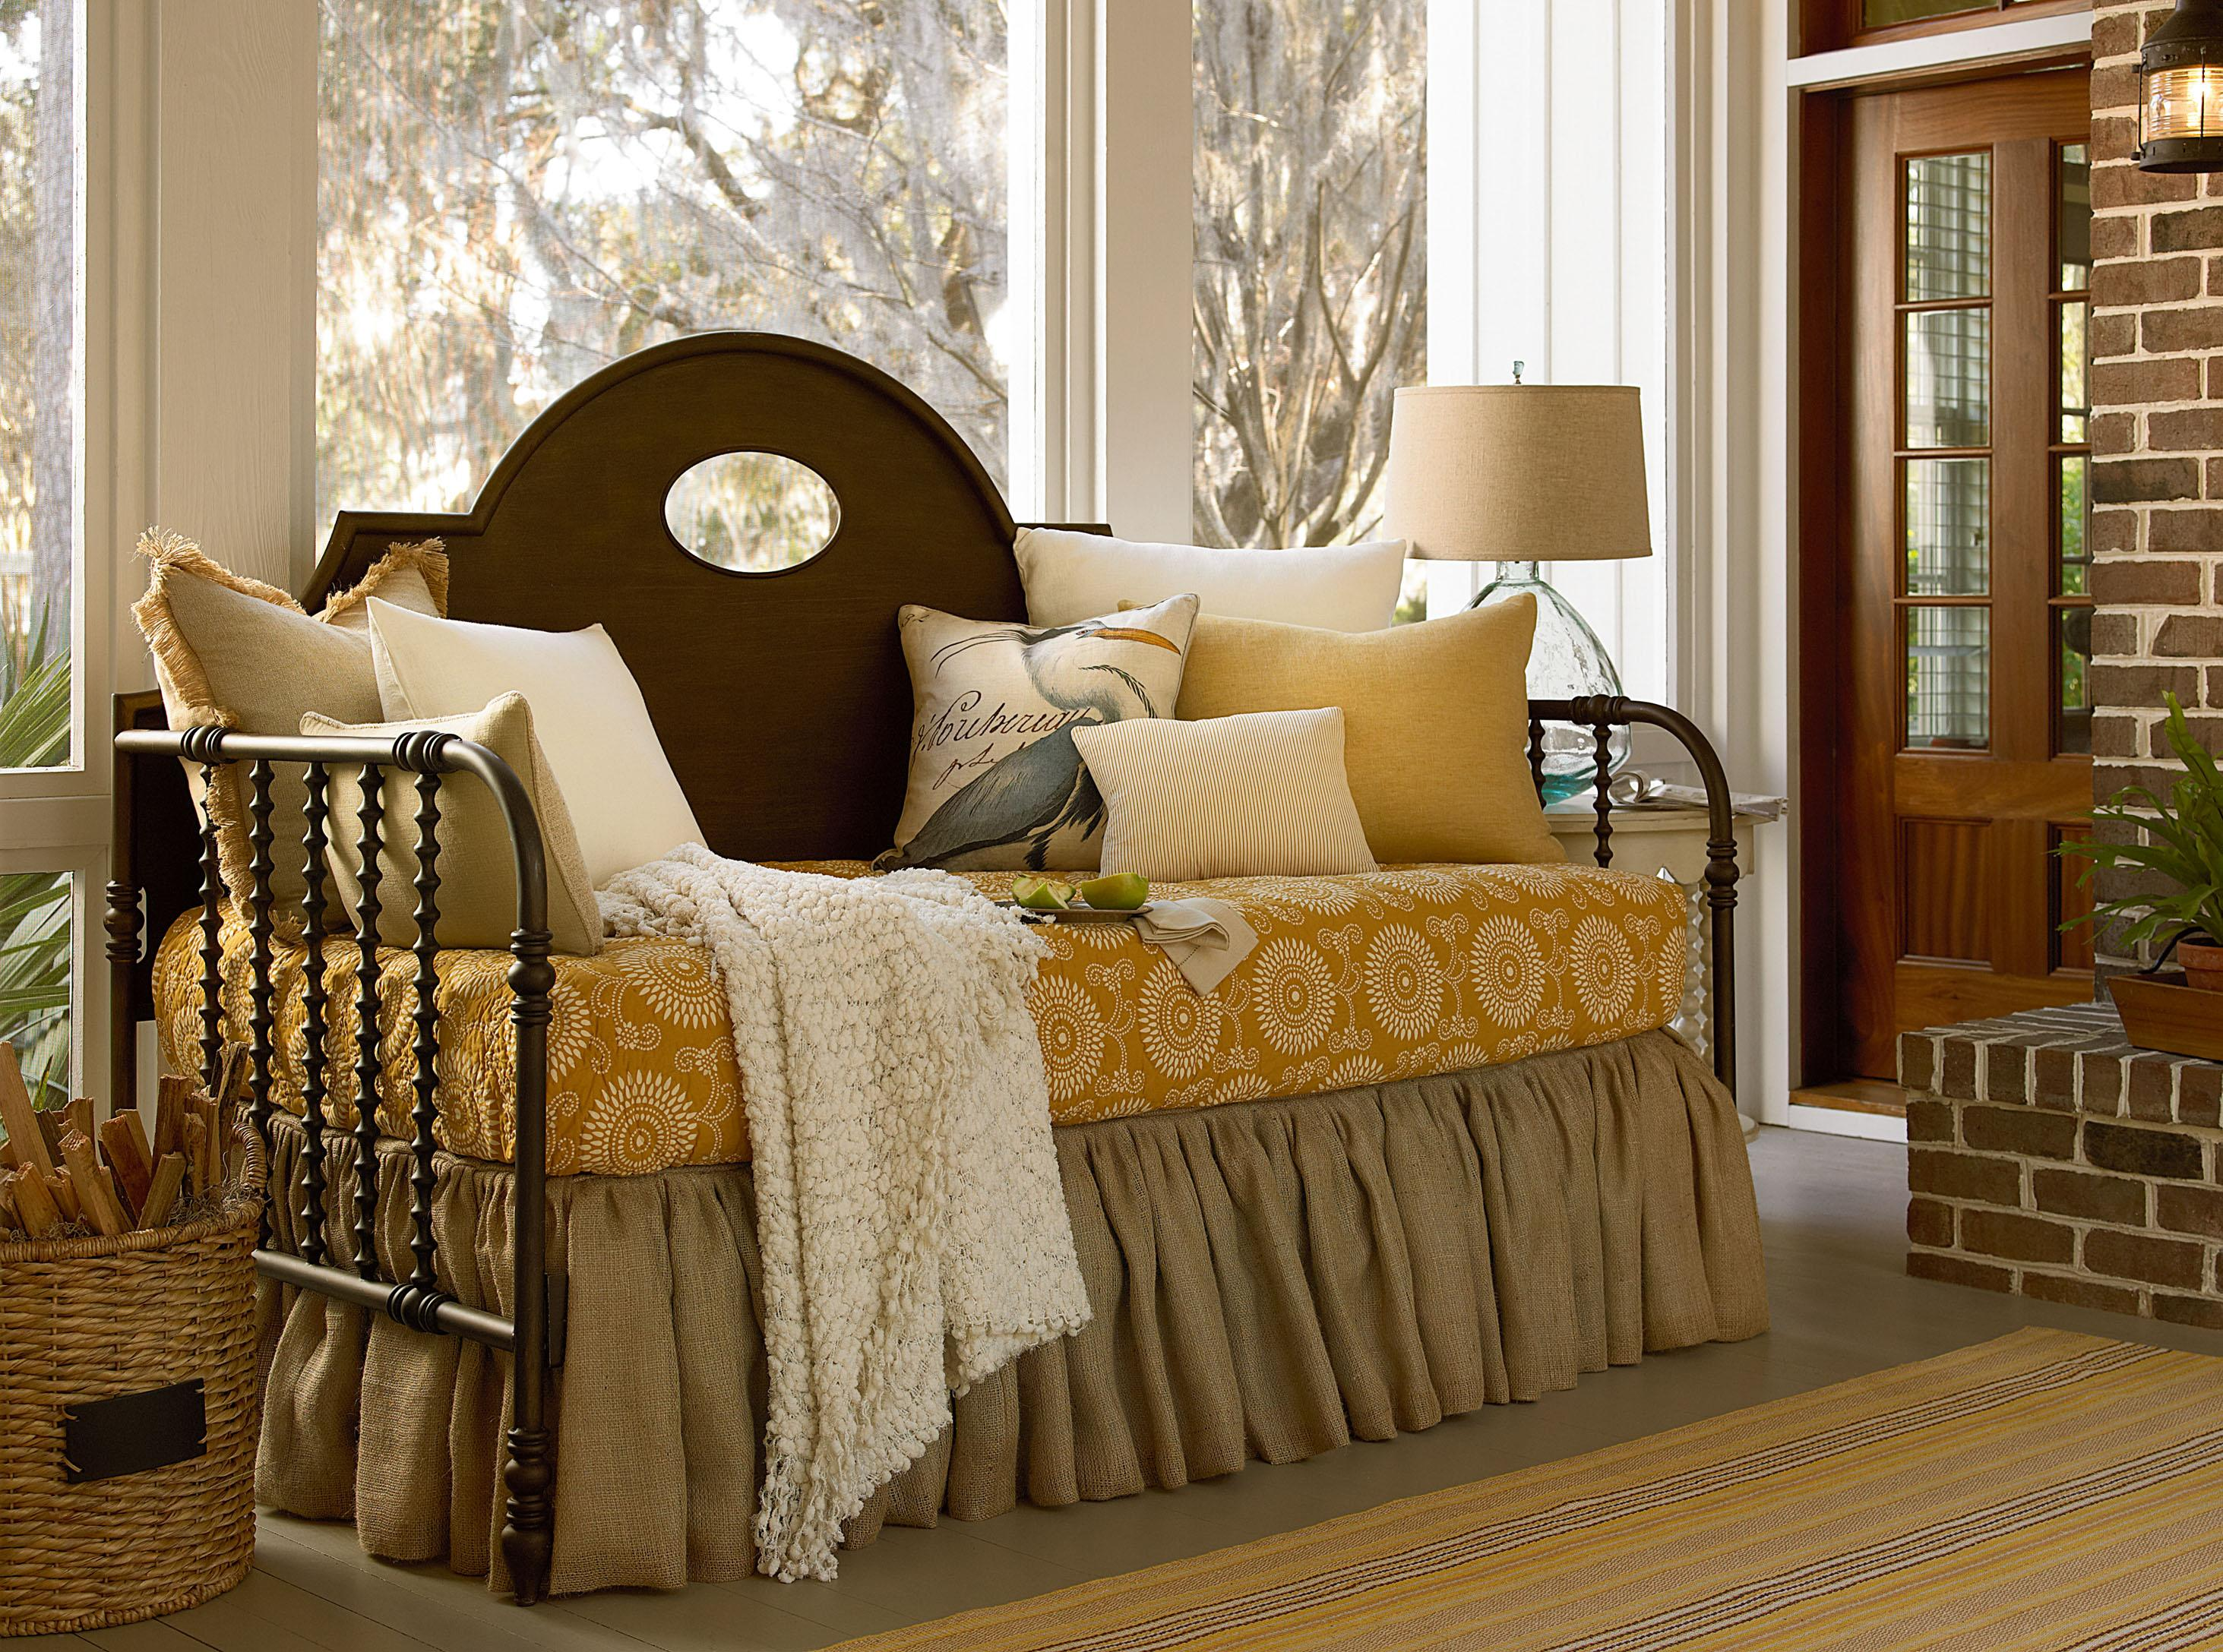 Captivating Paula Deen By Universal River House The Guest Room Queen Size Bed With  Metal Spool Frame | Sprintz Furniture | Panel Beds Nashville, Franklin, ...